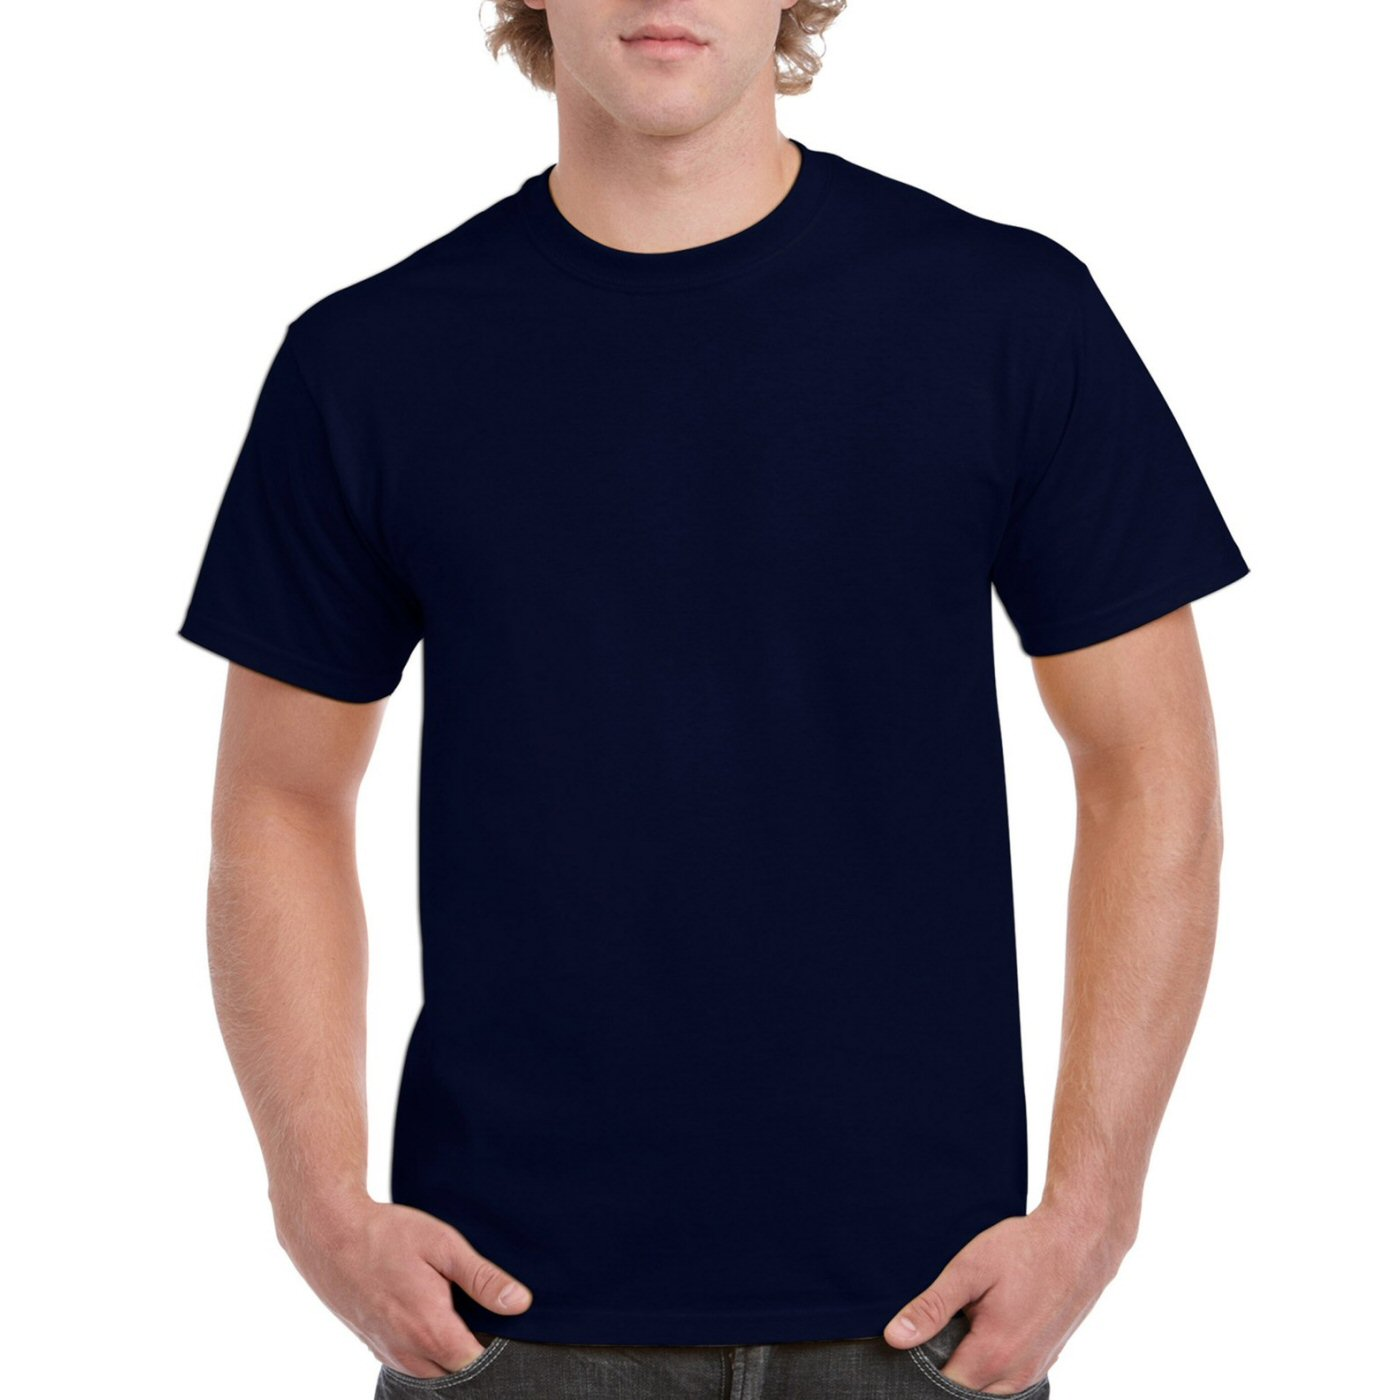 Navy Blue Plain Round Neck T-shirt image